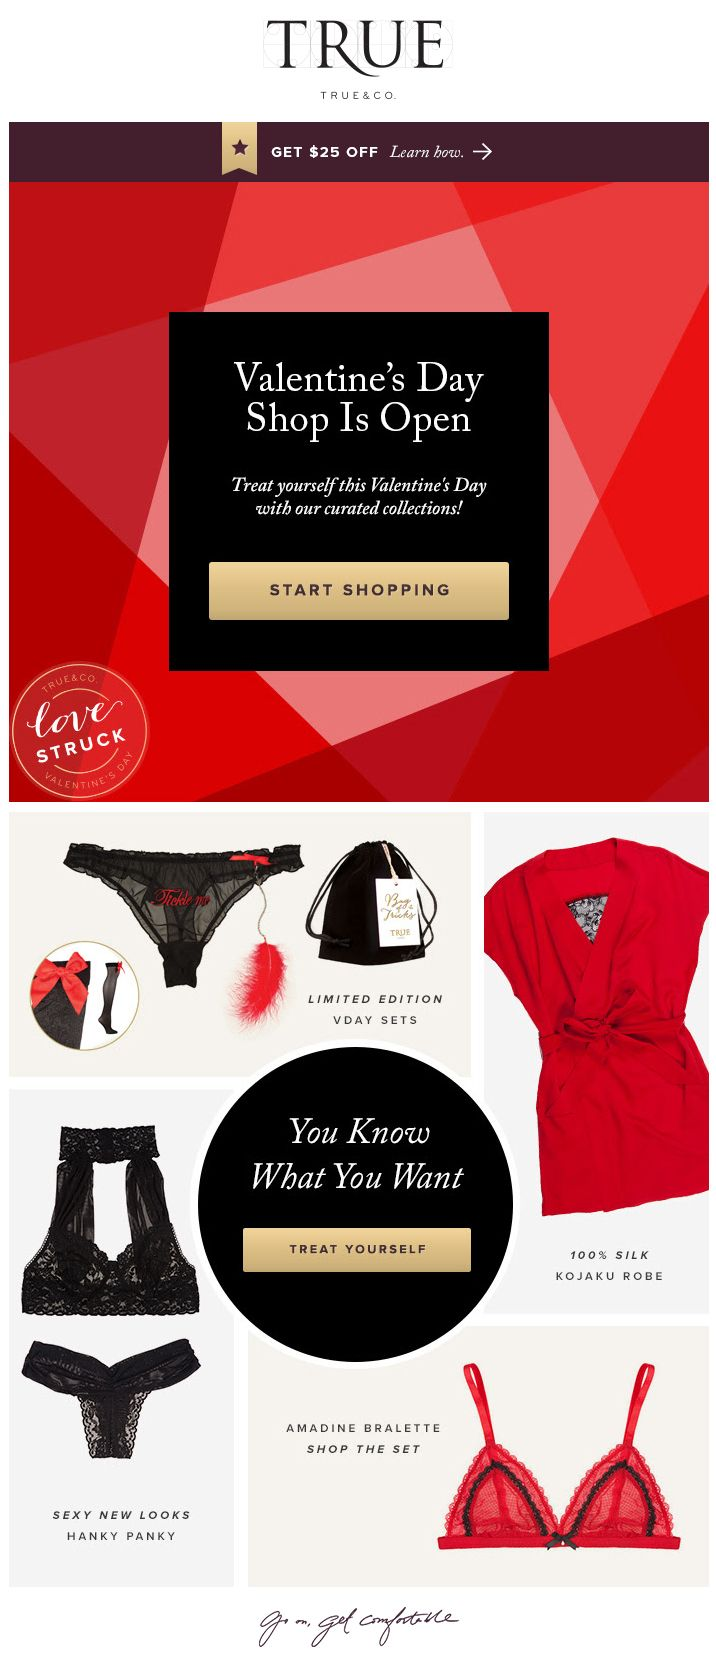 Valentine's Day Inspiration by TRUE & CO. More Inspiring newsletters: http://freshmail.com/inspiring-newsletters